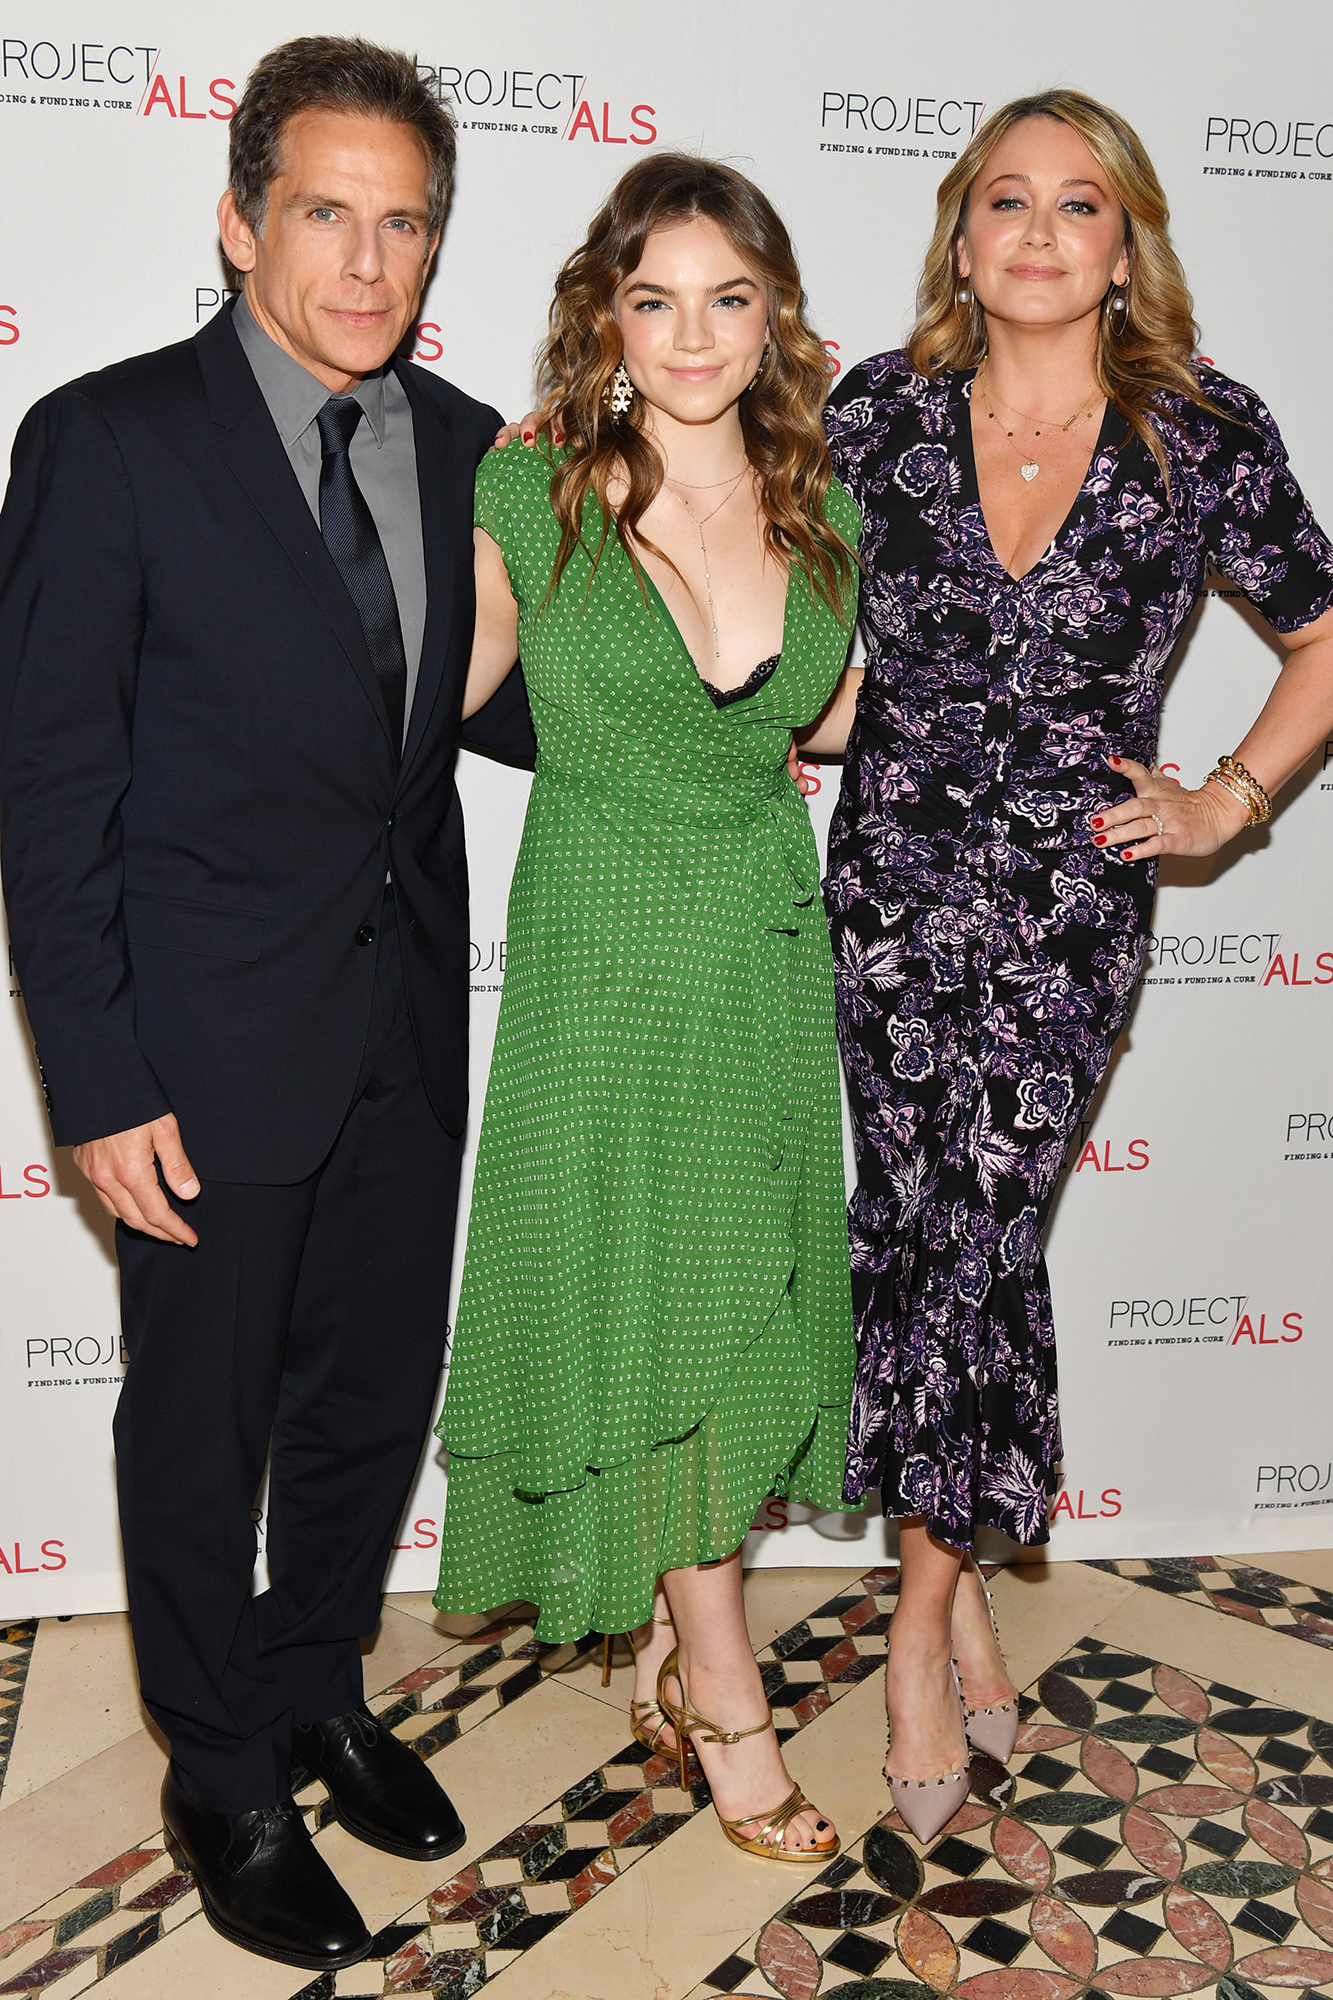 Ben Stiller and Christine Taylor Attend Project ALS Gala With Daughter Ella 2 Years After Split